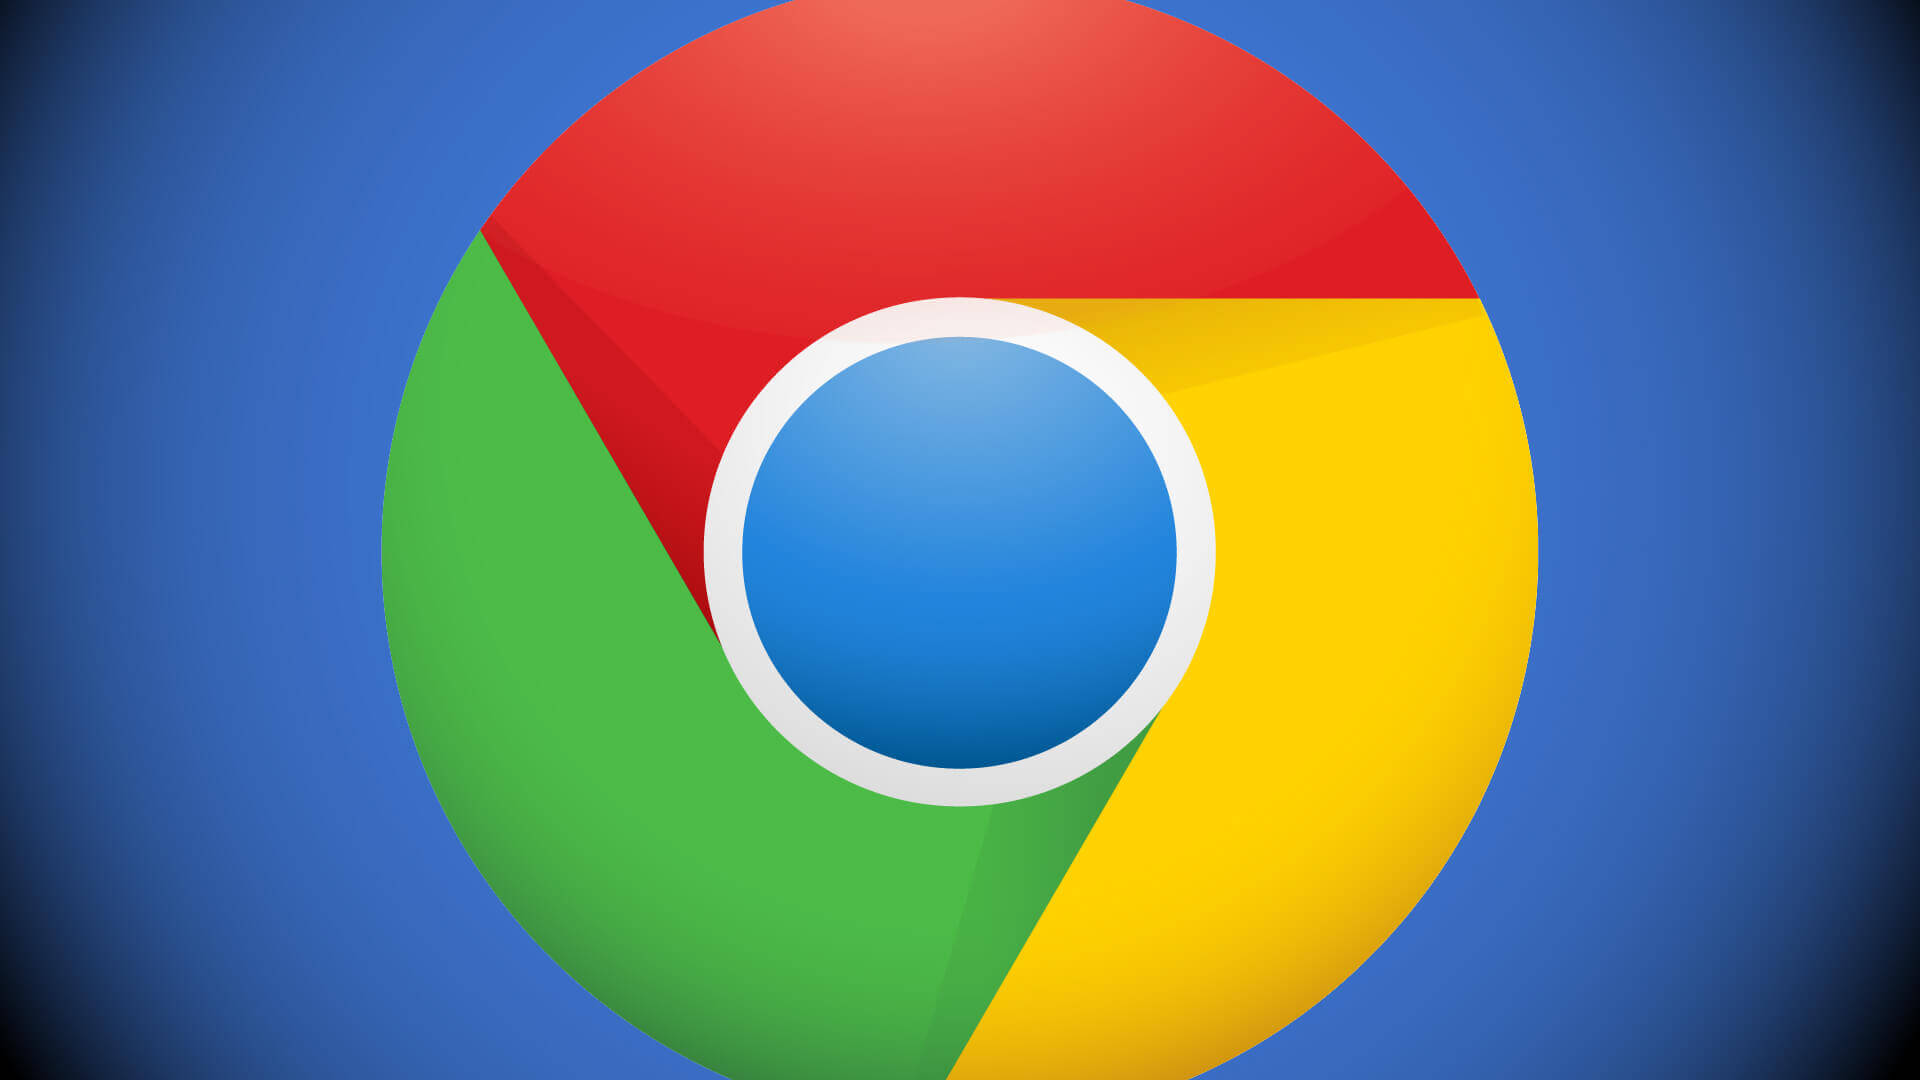 google-chrome-logo-1920.jpg